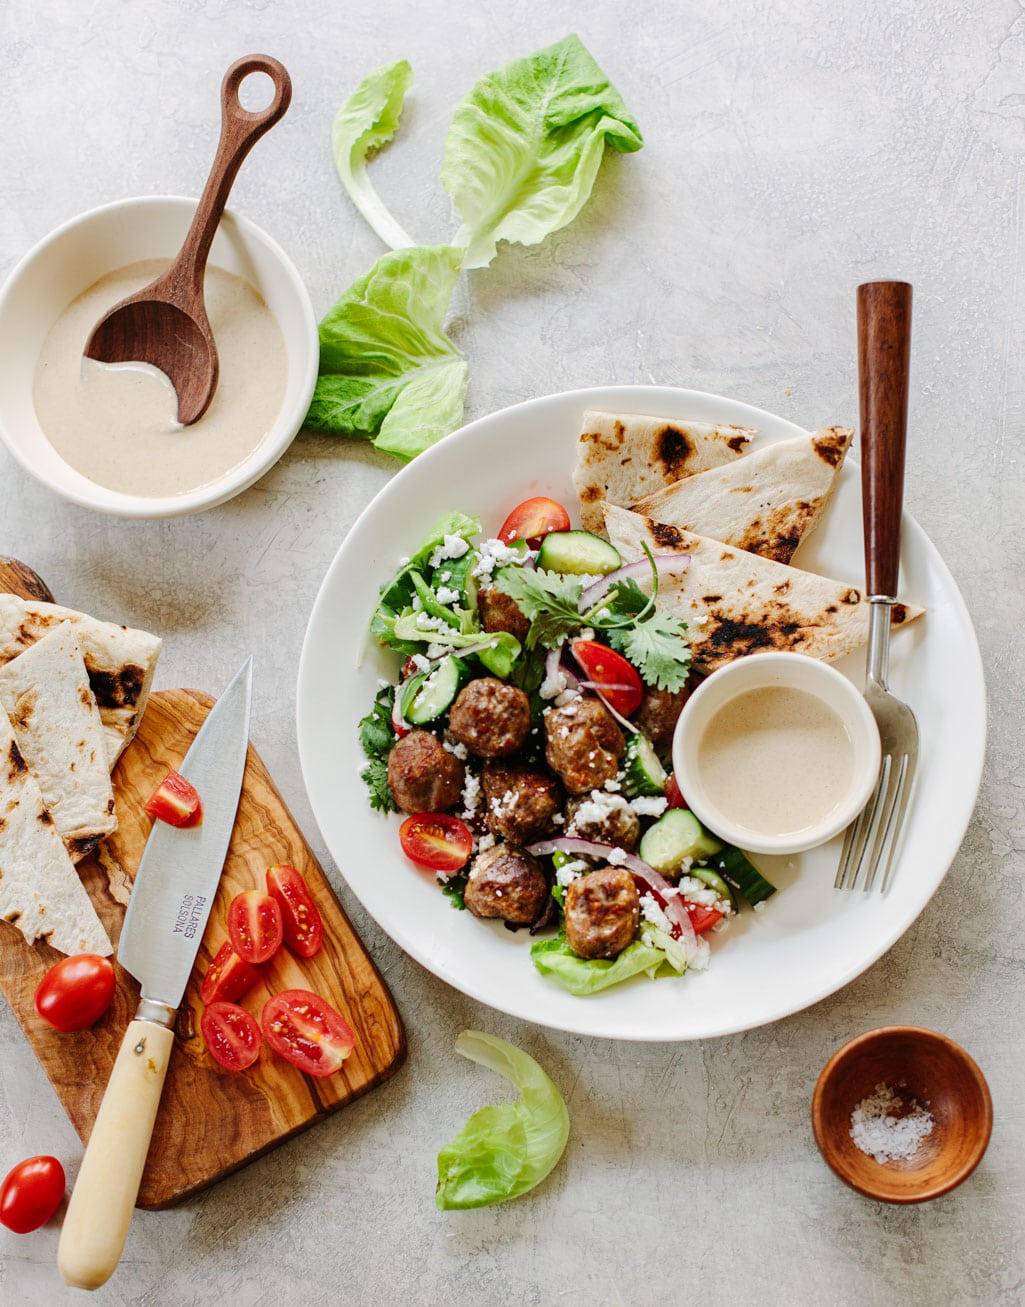 Healthy Gyro Salad with Spiced Chicken Meatballs